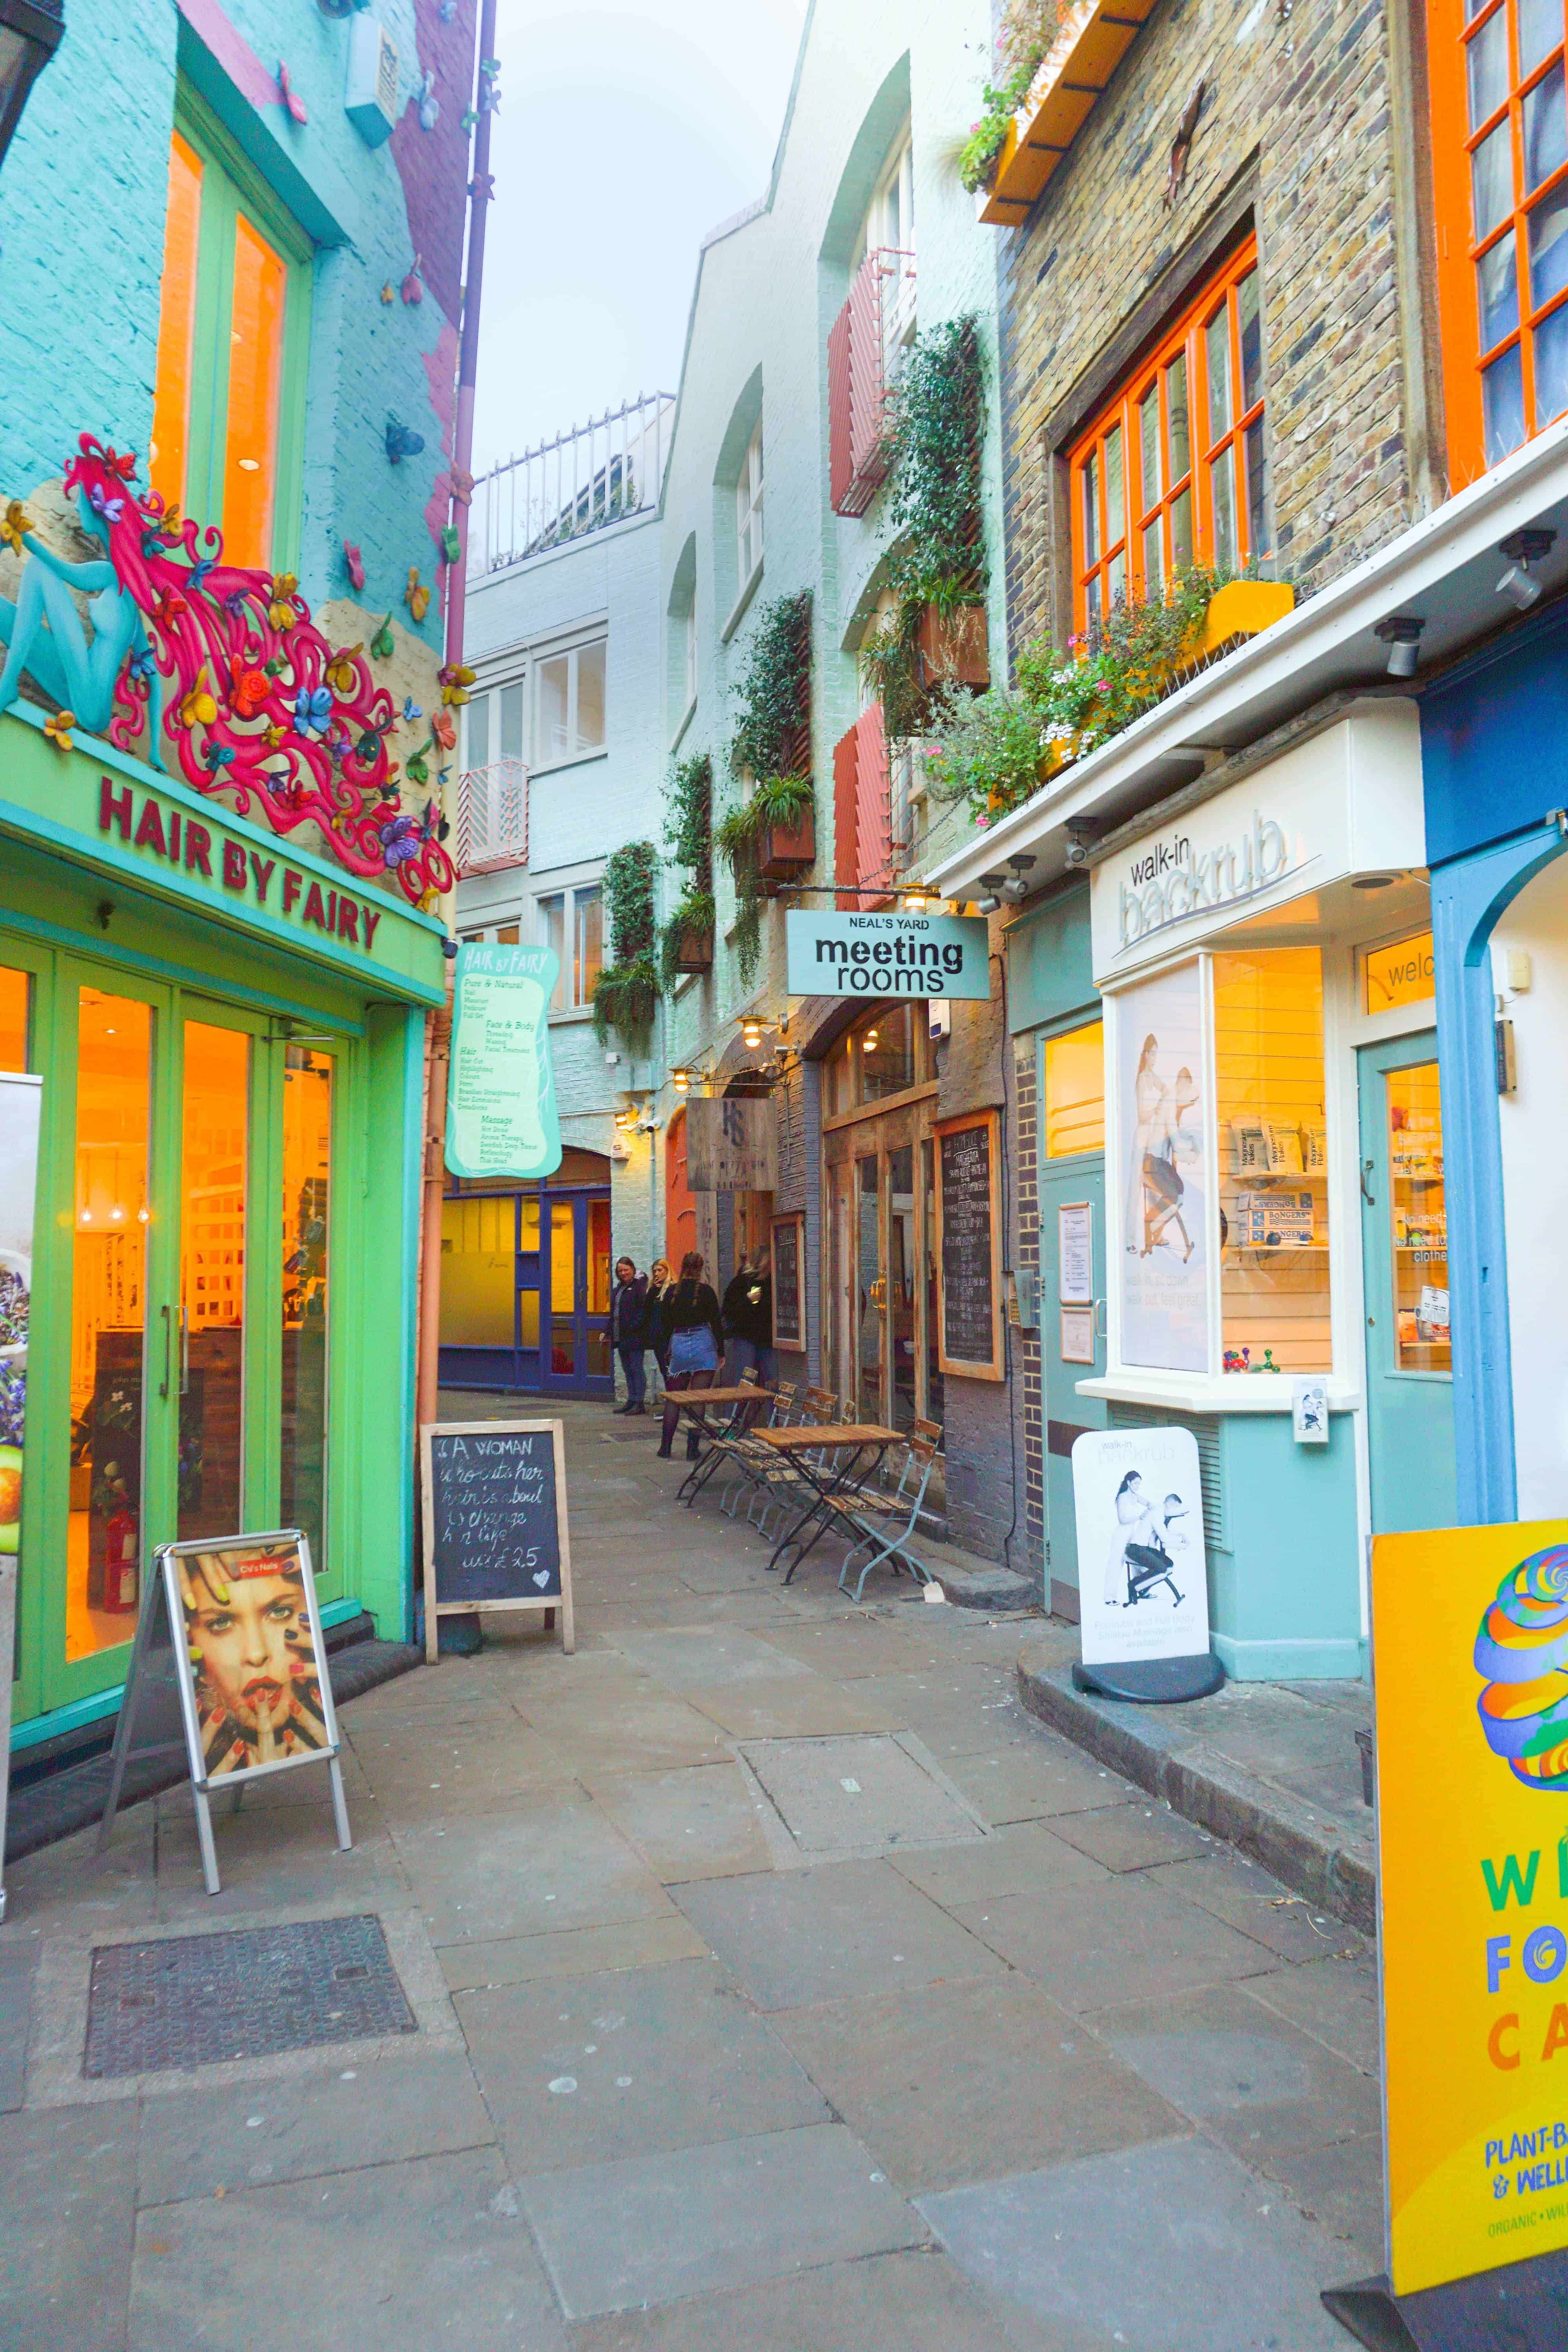 10 Prettiest Streets In London + Map To Find Them - Follow Me Away